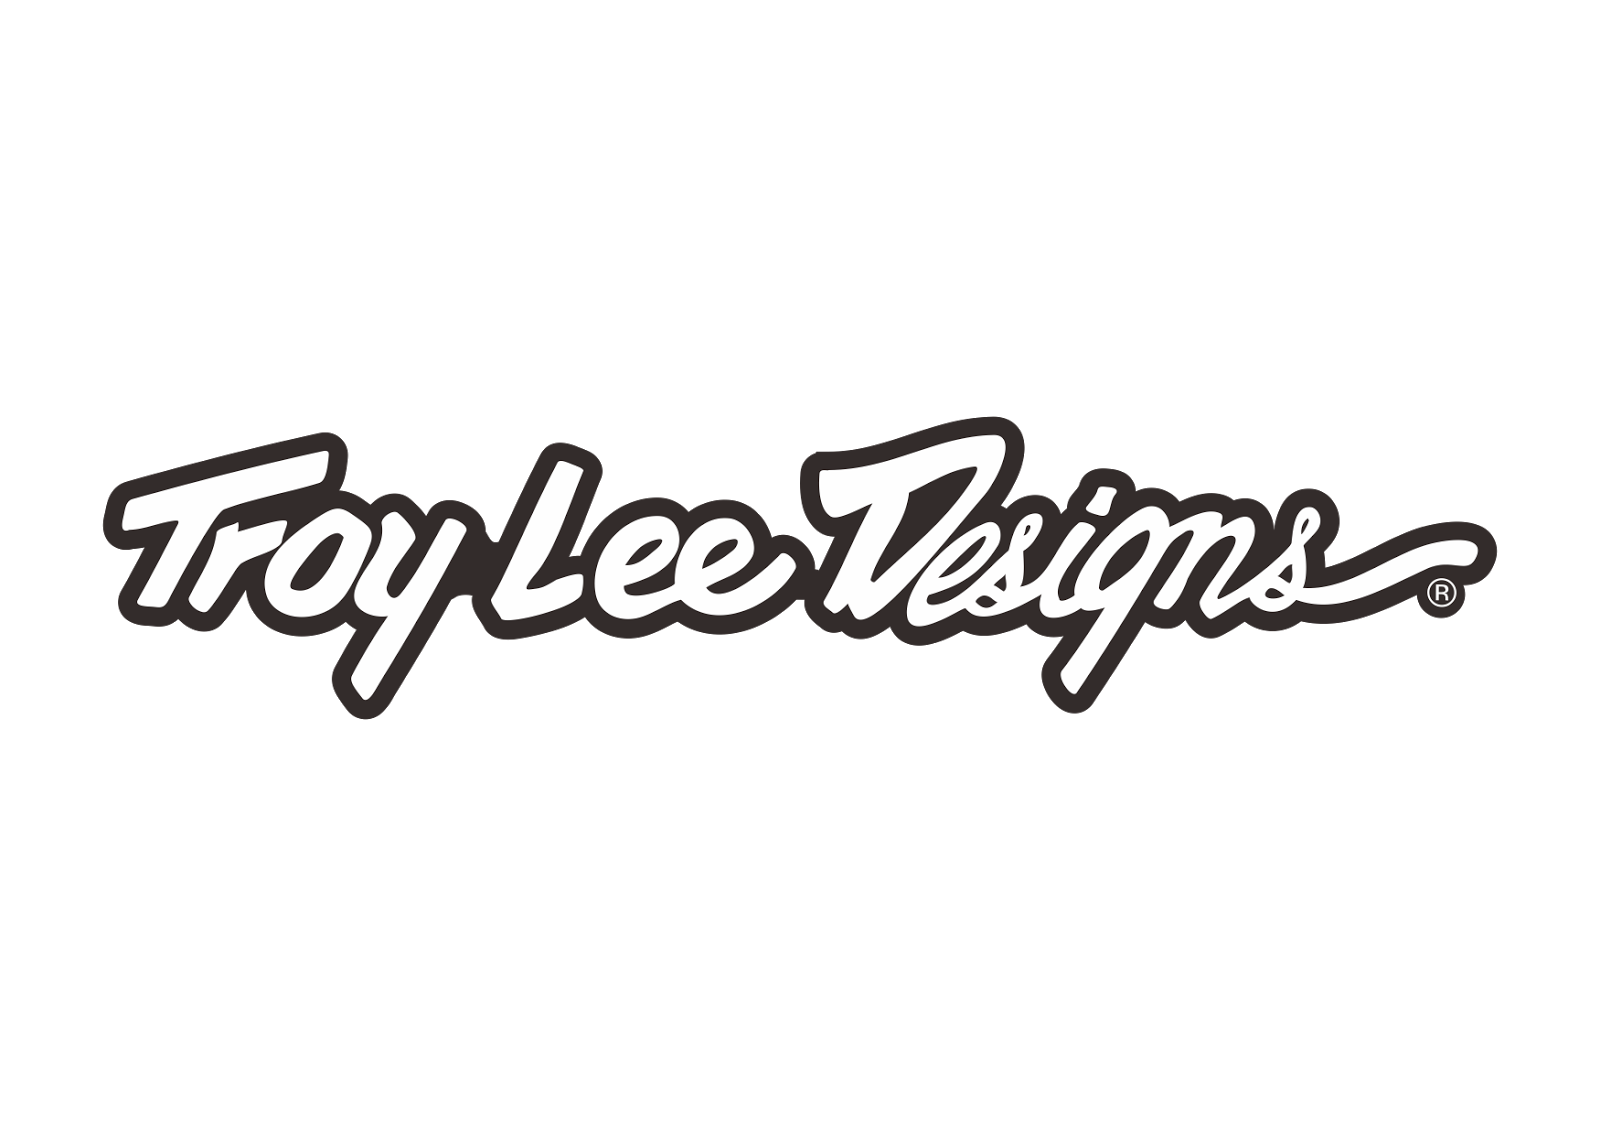 Troy-Lee-Designs-vector-logo.png